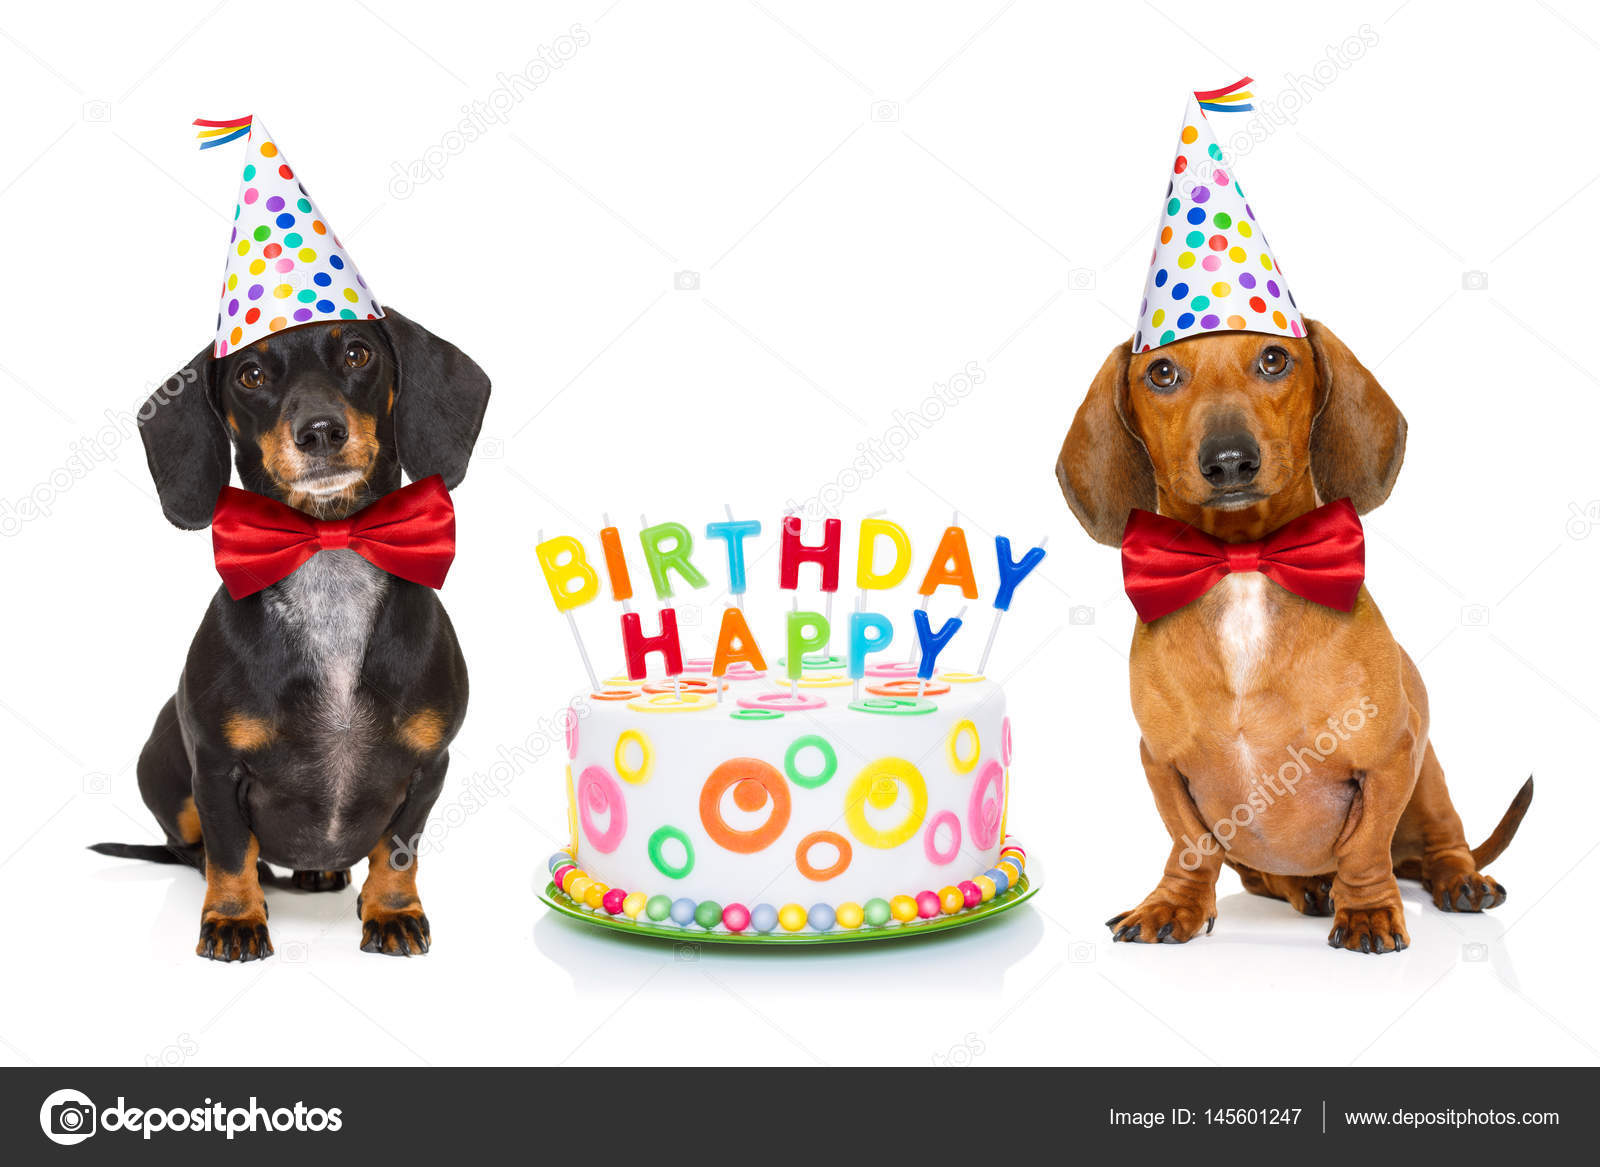 Couple Of Two Dachshund Or Sausage Dogs Hungry For A Happy Birthday Cake With Candles Wearing Red Tie And Party Hat Isolated On White Background Photo